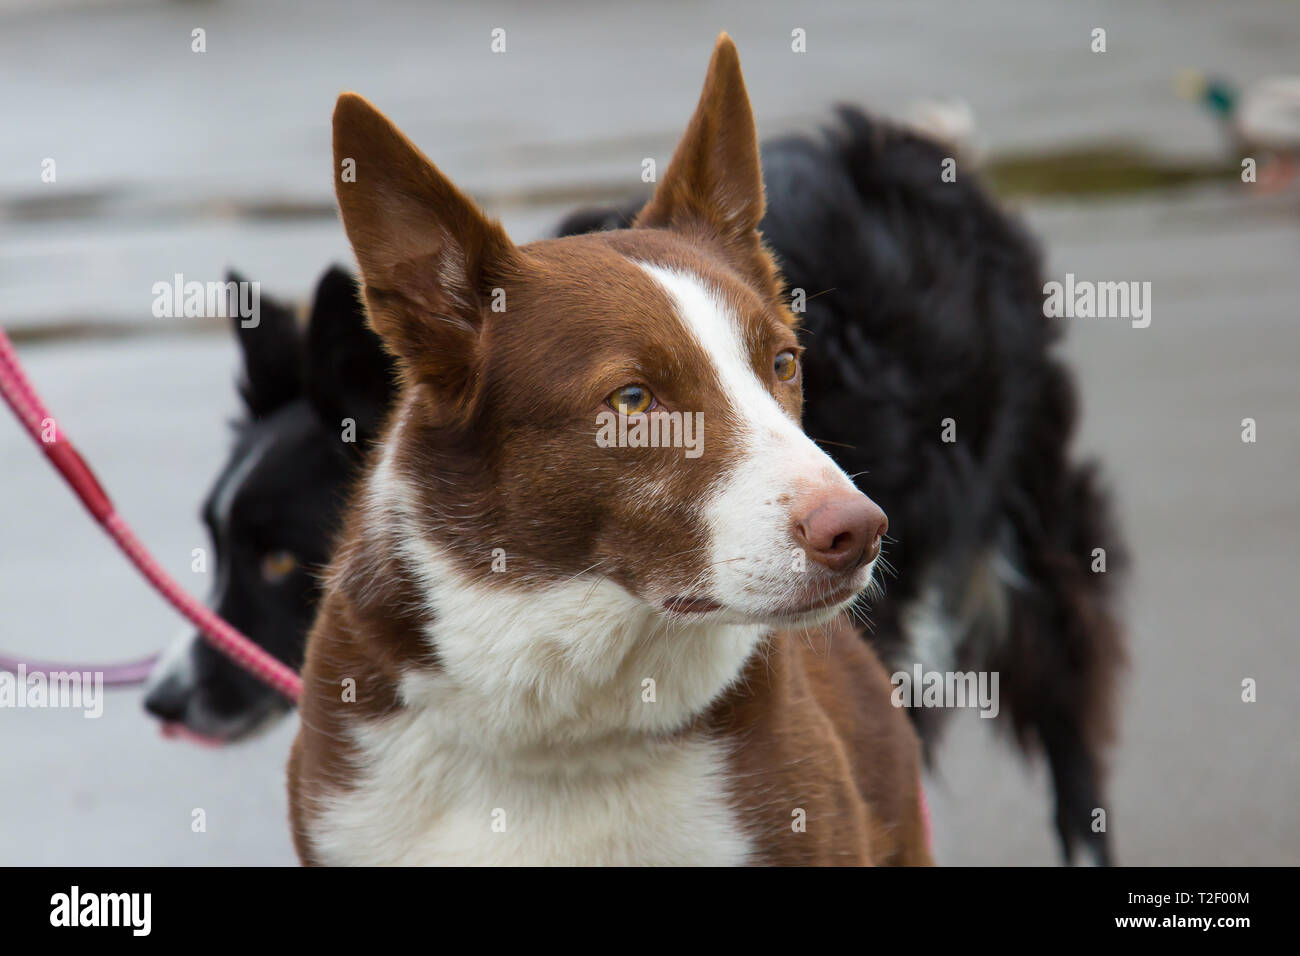 Detailed Close Up Head And Shoulders Shot Of An Australian Short Haired Red Border Collie Out For His Walk In A Country Uk Park Stock Photo Alamy